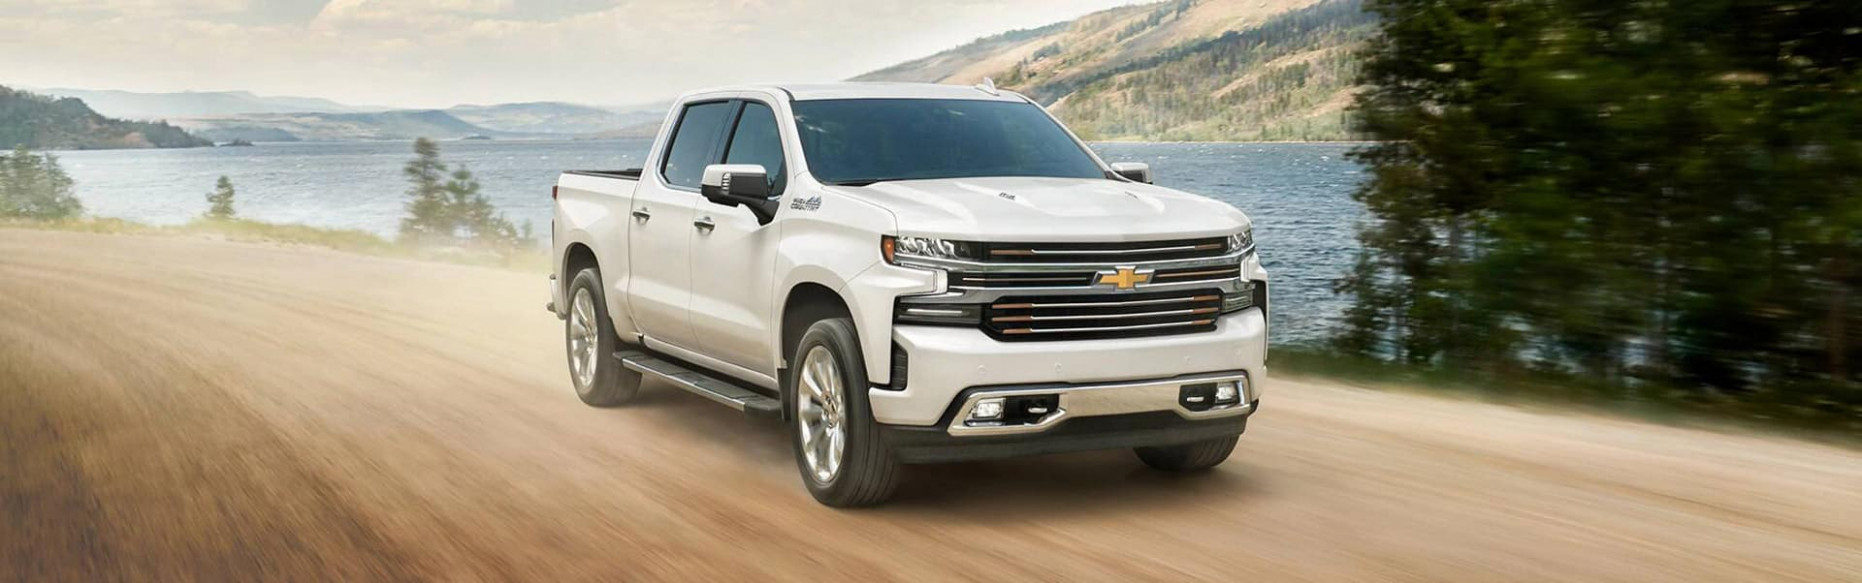 11 Chevrolet Silverado 11 Configurations | Bayer Auto Group